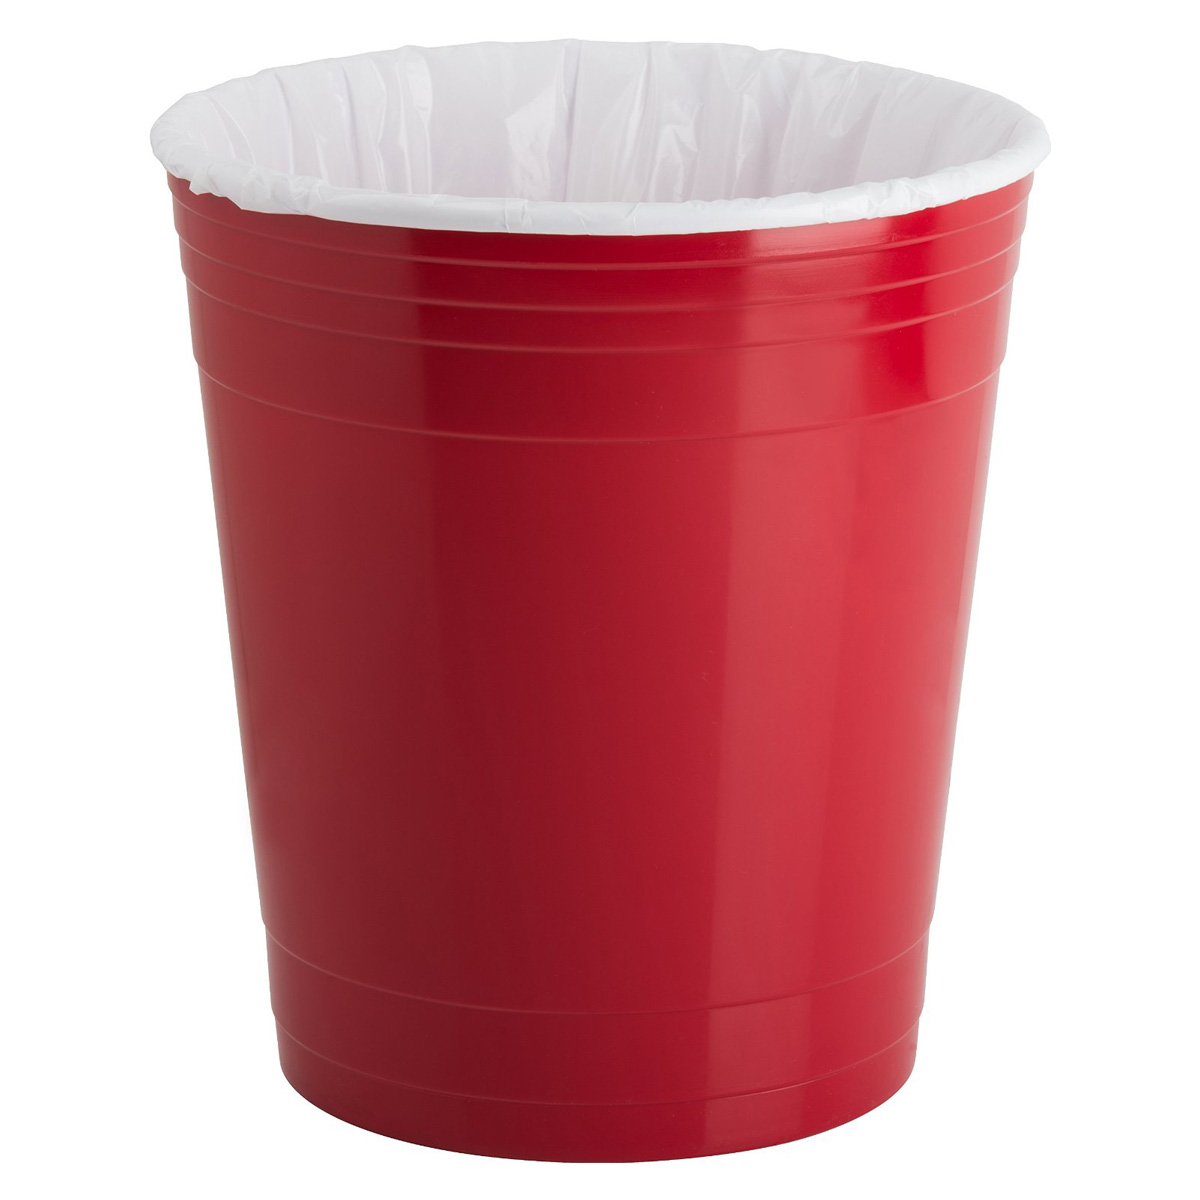 Cool Wastebaskets Red Party Cup Waste Basket The Green Head